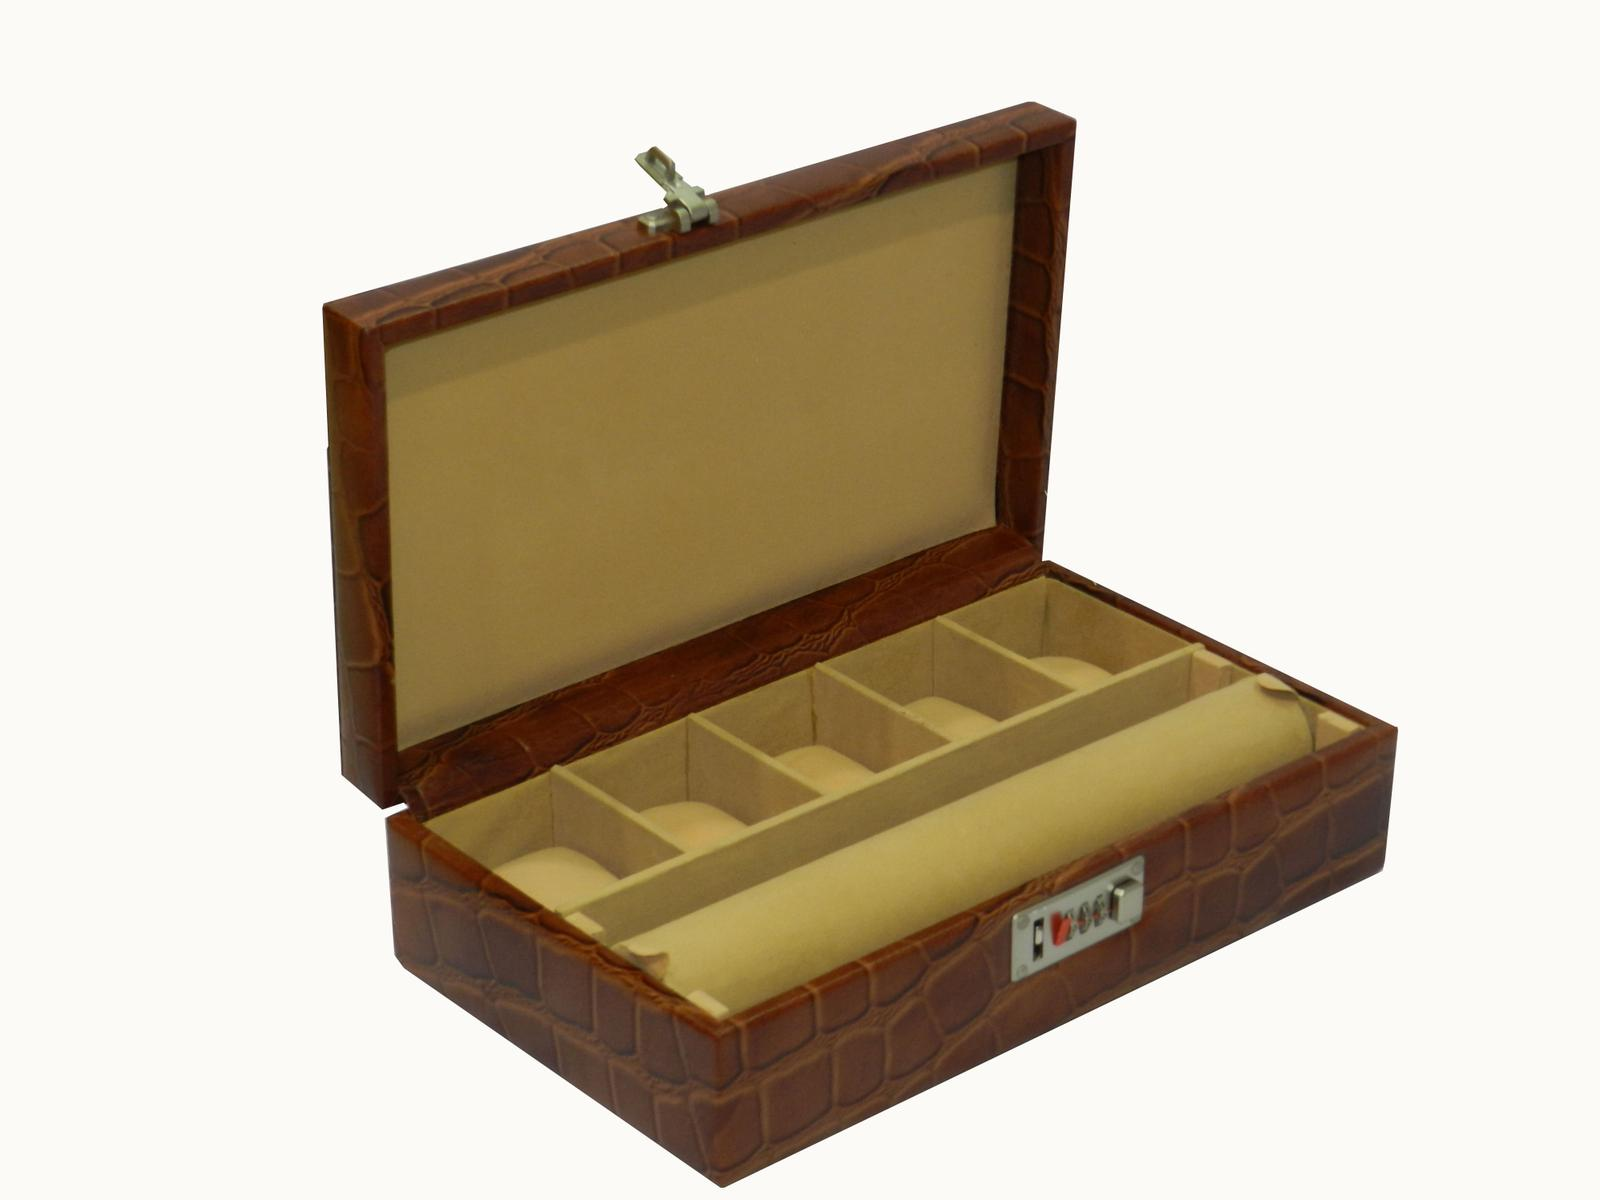 Laveri Genuine Leather Bracelet Jewelry Box with 1 Removable Rolls - Brown BROWN